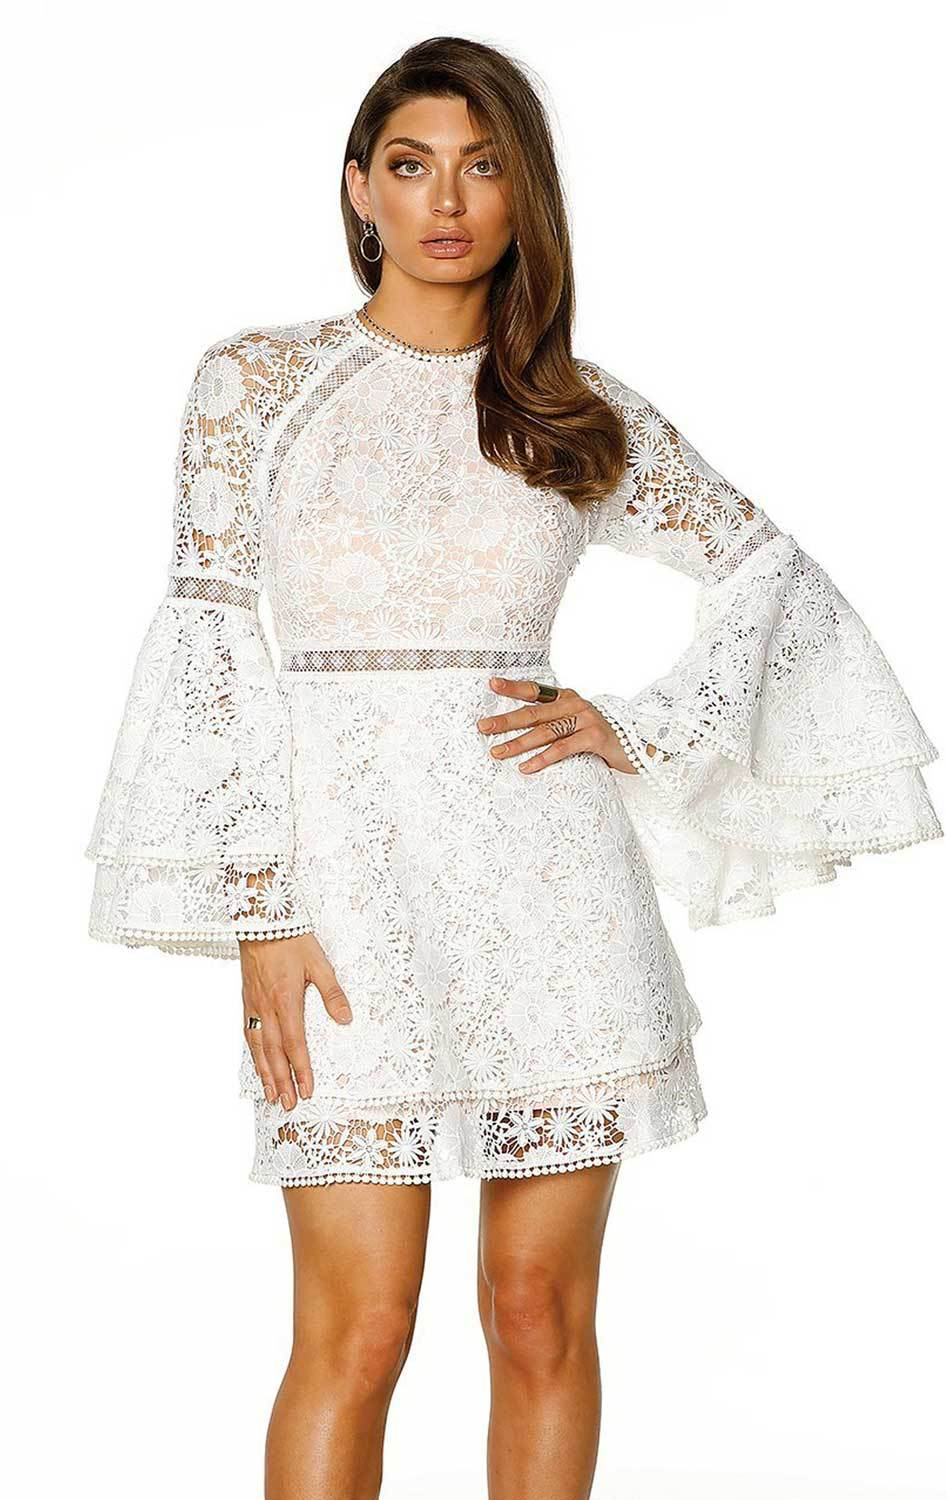 Pasduchas Duke Lace A Line Flare Sleeve Mini Dress in White - Lookbook Boutique